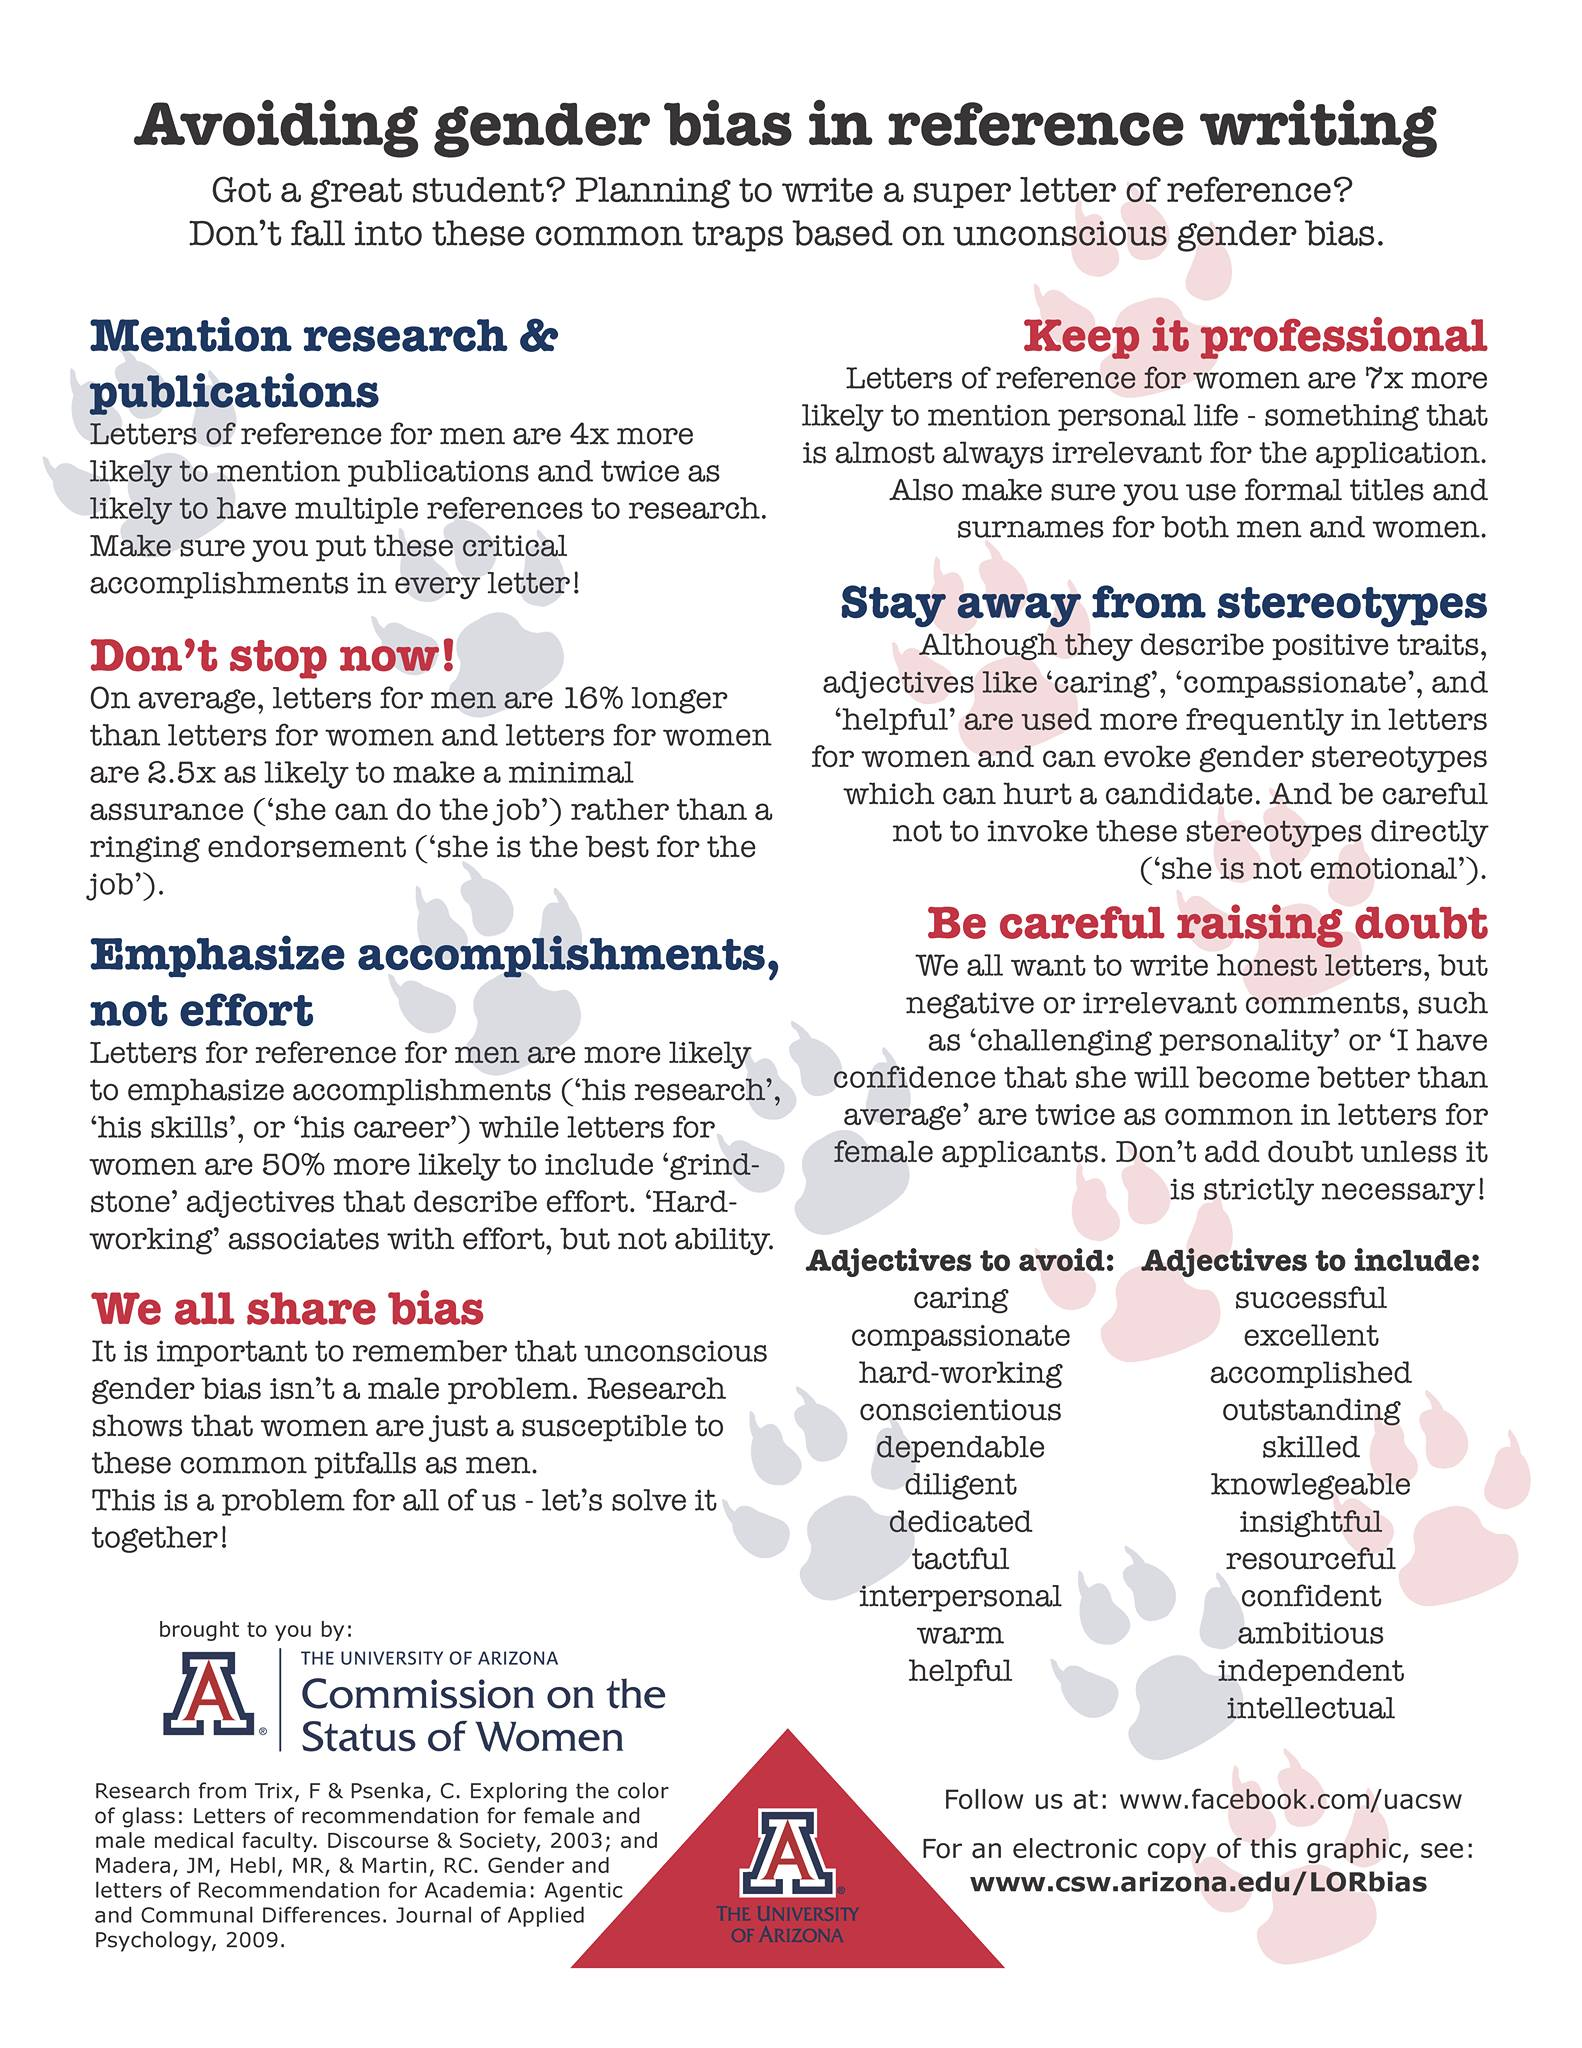 gender bias in academe an annotated bibliography of important suggestions for avoiding gender bias in letters of recommendation produced by the university of arizona commission on the status of women